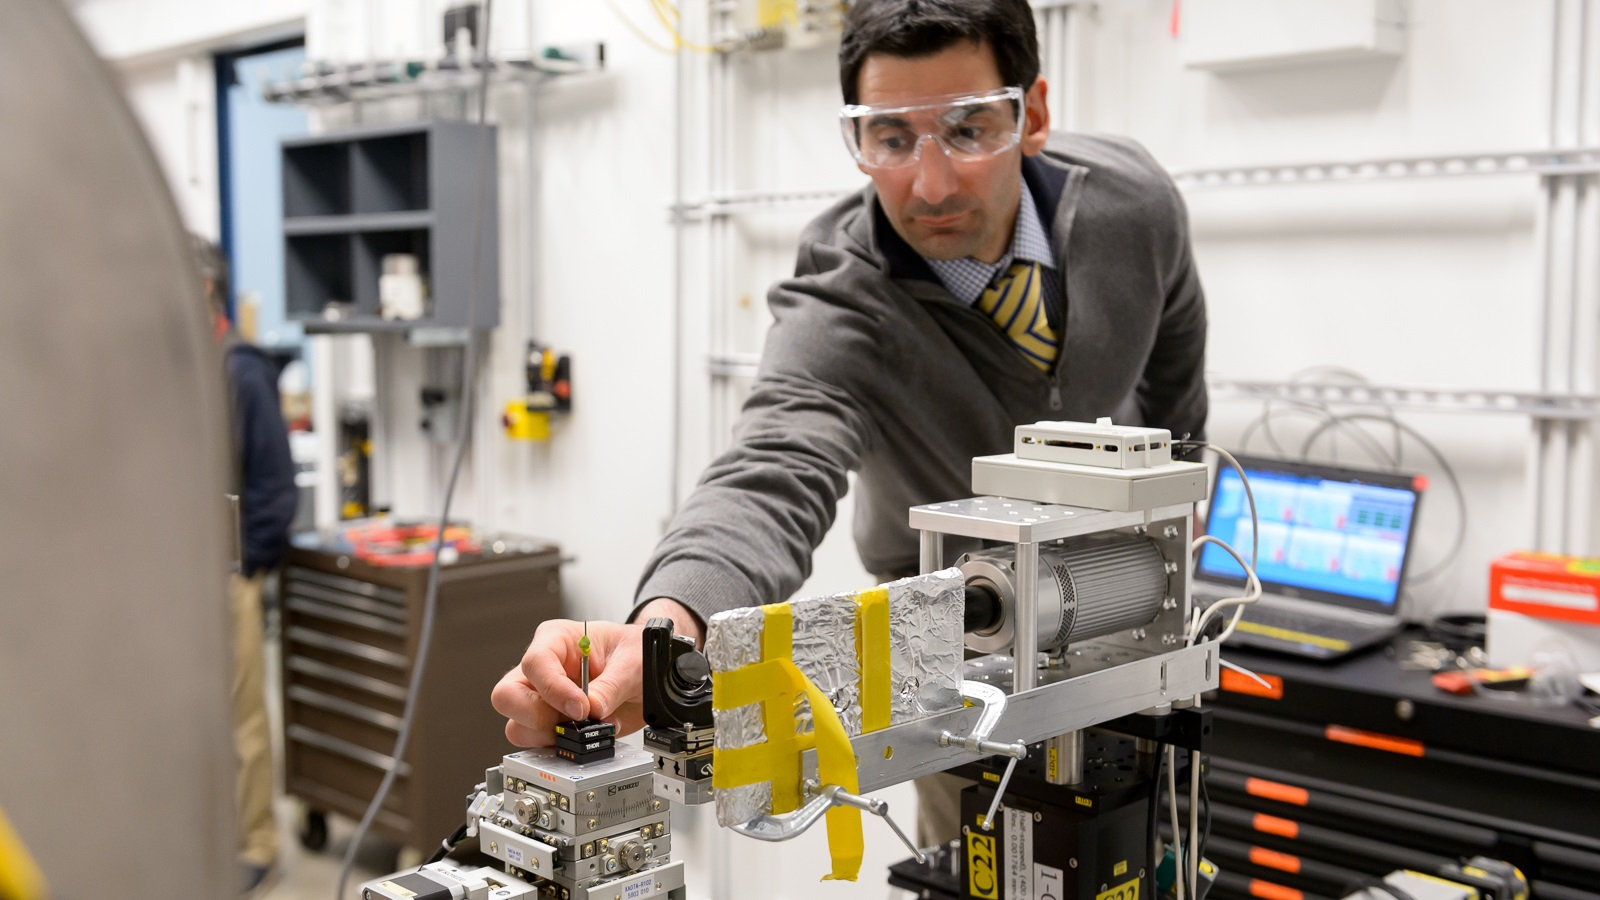 Michael Sangid of Purdue University installs a sample on the new high-throughput instrument installed at the 6-ID-D end-station of the Advanced Photon Source. Purdue joined four other institutions in making this new instrument a reality.